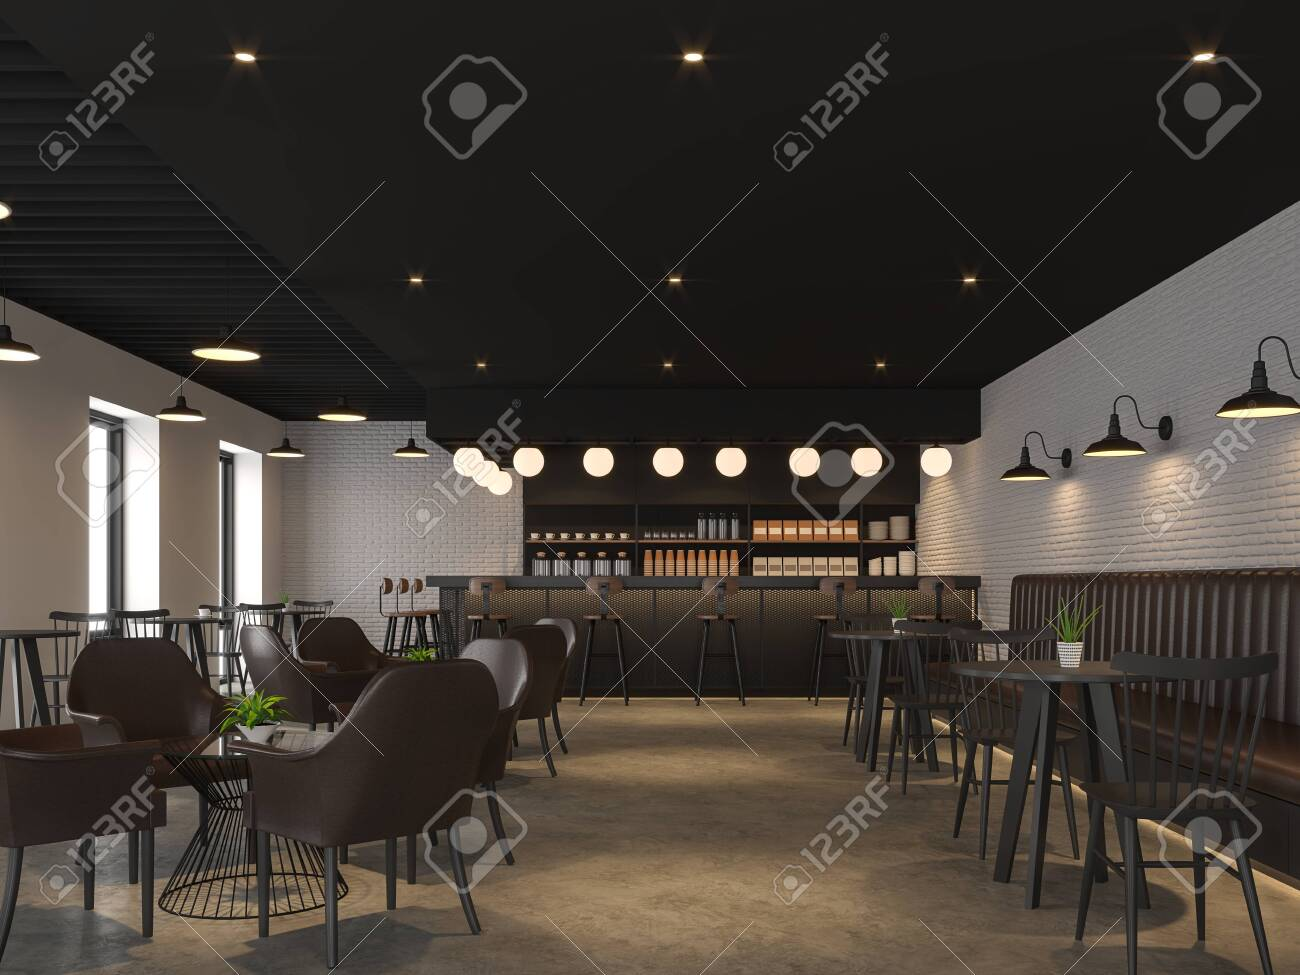 Industrial loft style coffee shop 3d render,There are concrete floors, white brick walls, black ceilings, decorate with black wood and dark brown leather furniture. - 131445620